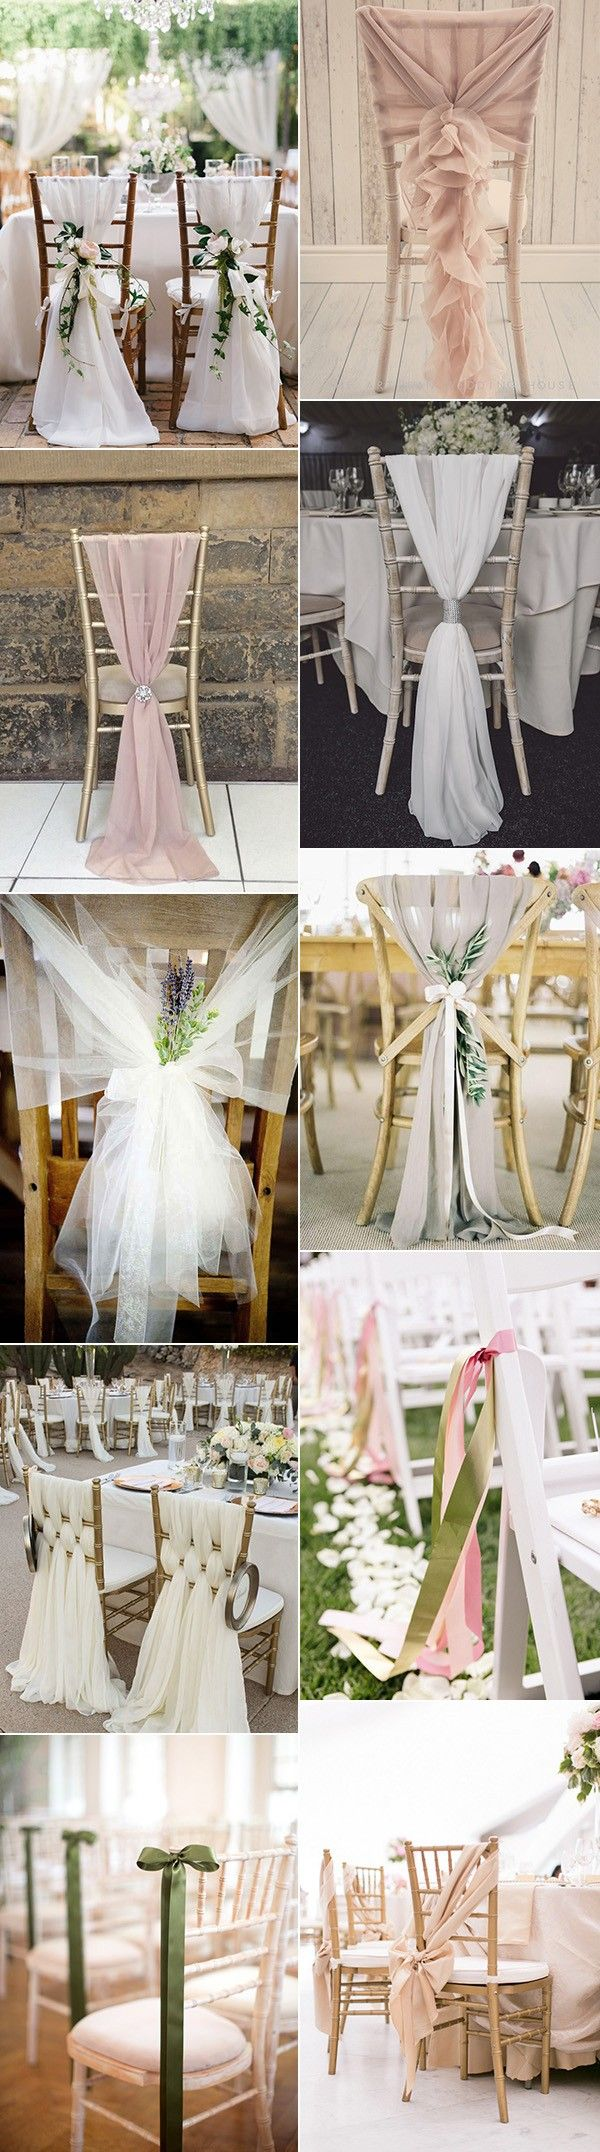 Wedding Chair Decoration Ideas With Fabric And Ribbons